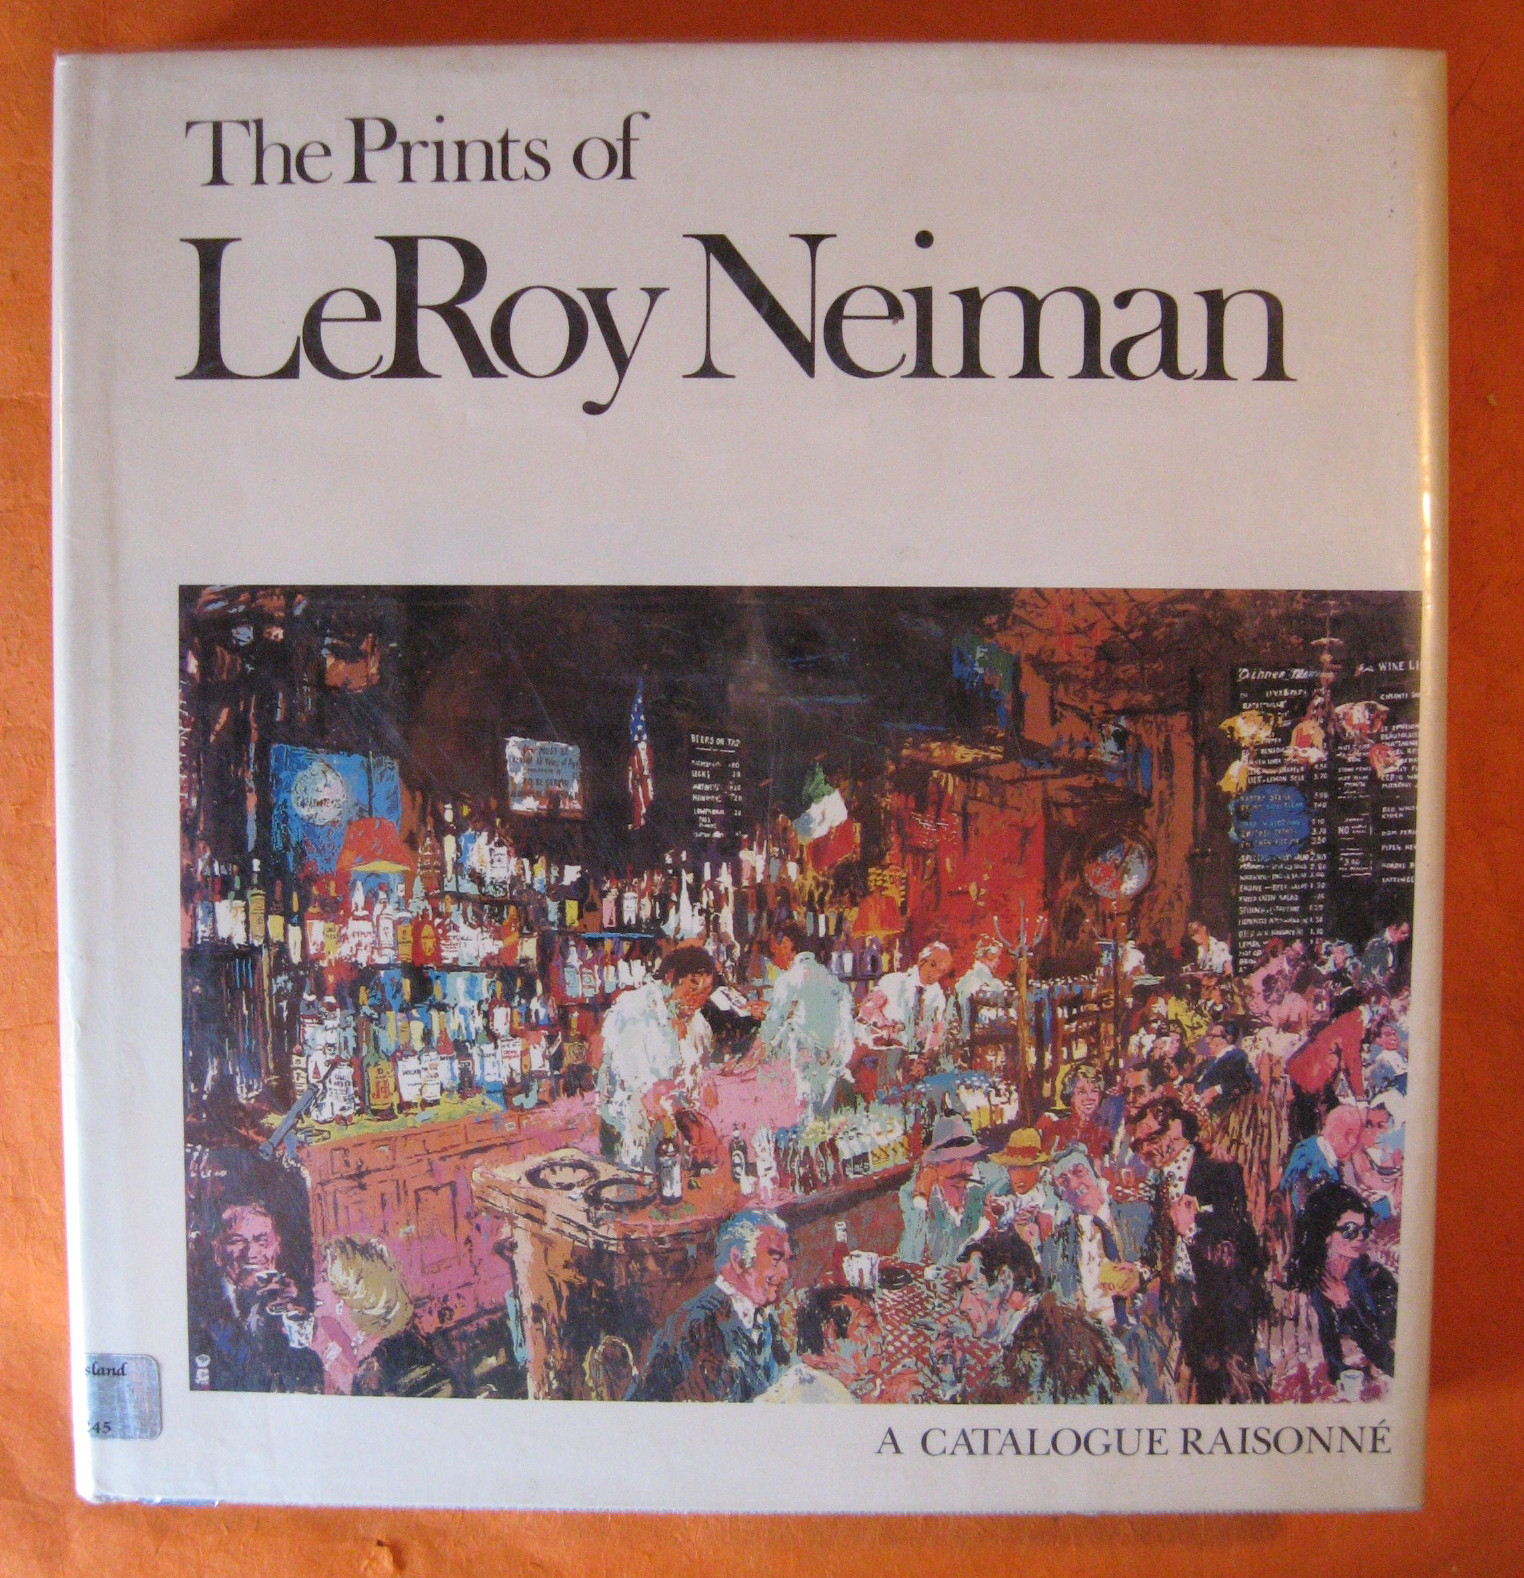 The Prints of LeRoy Neiman: A Catalogue Raisonne of Serigraphs, Lithographs, and Etchings., Neiman, LeRoy